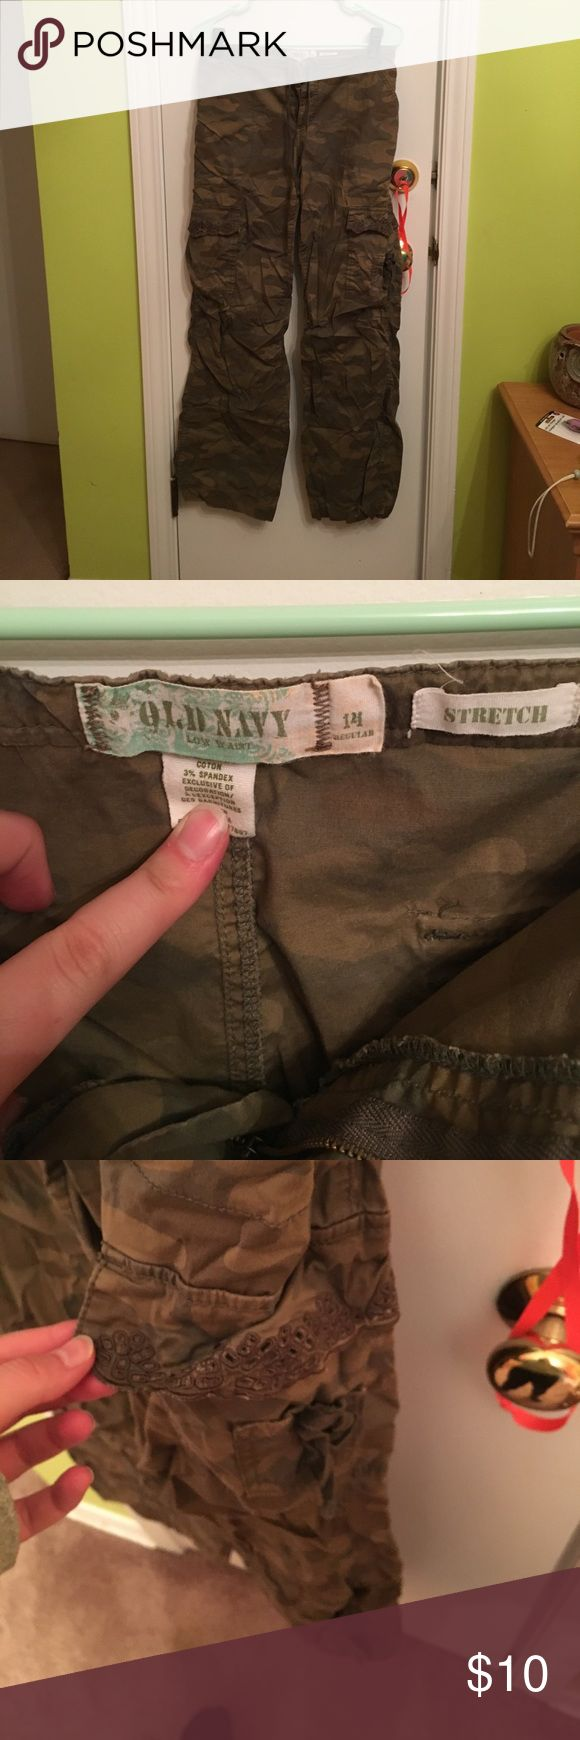 Camo Cargo Pants Traditional camo cargo shorts from old navy. Excellent condition- only worn once or twice. Has feminine ribbons and lace on the side pockets. Great for camping or hiking Old Navy Pants